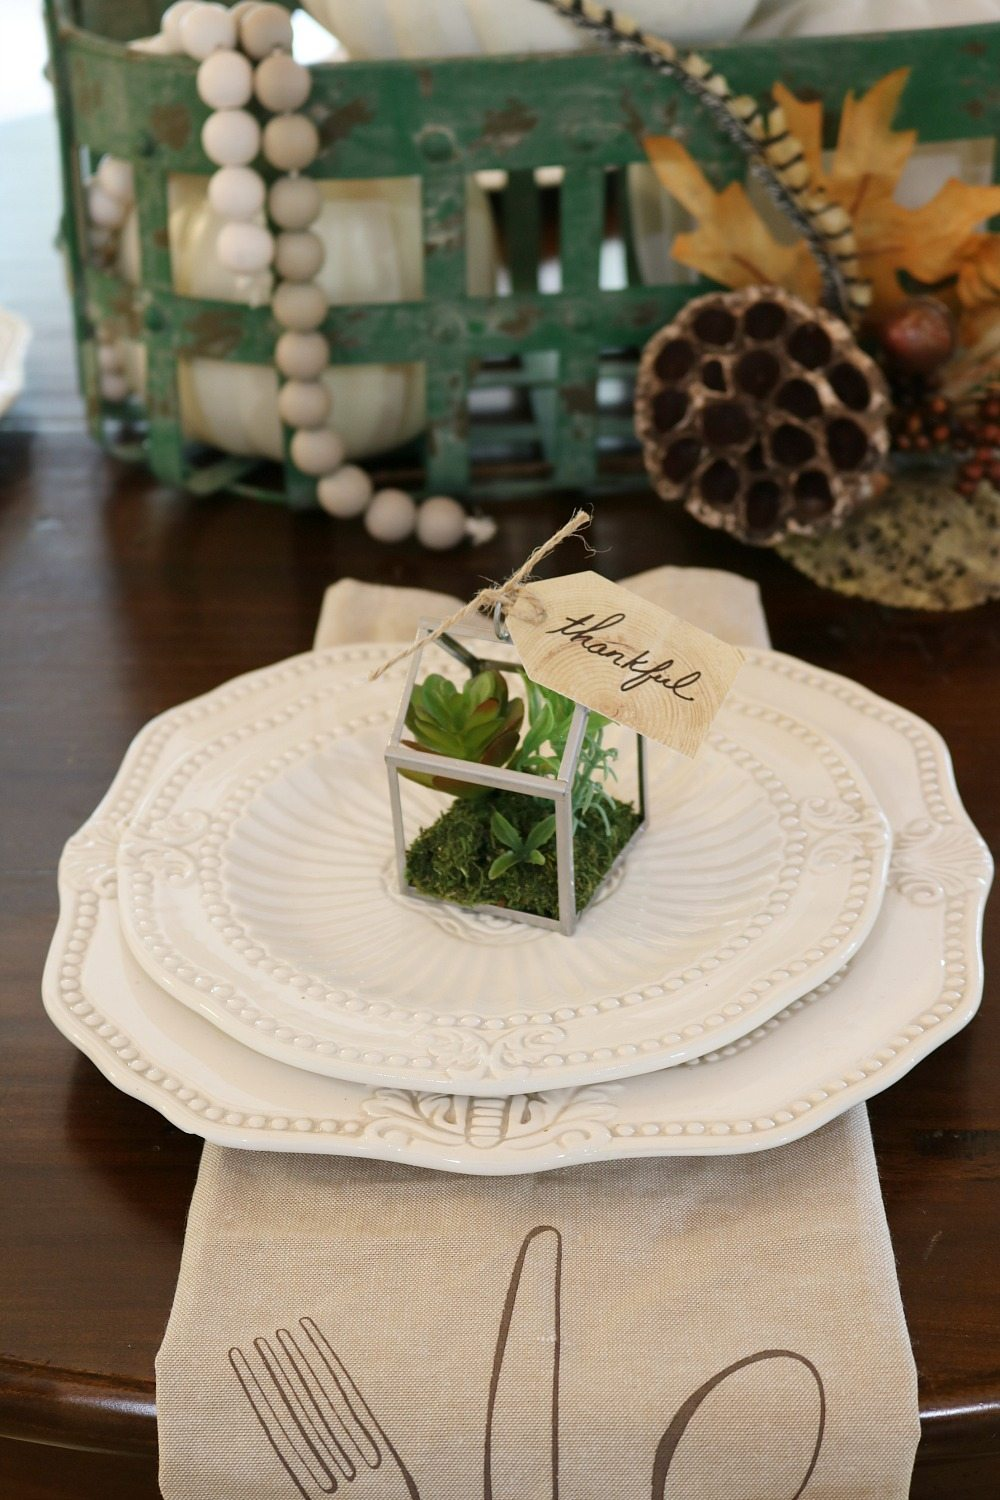 Tiny green house filled with succulents for fall table